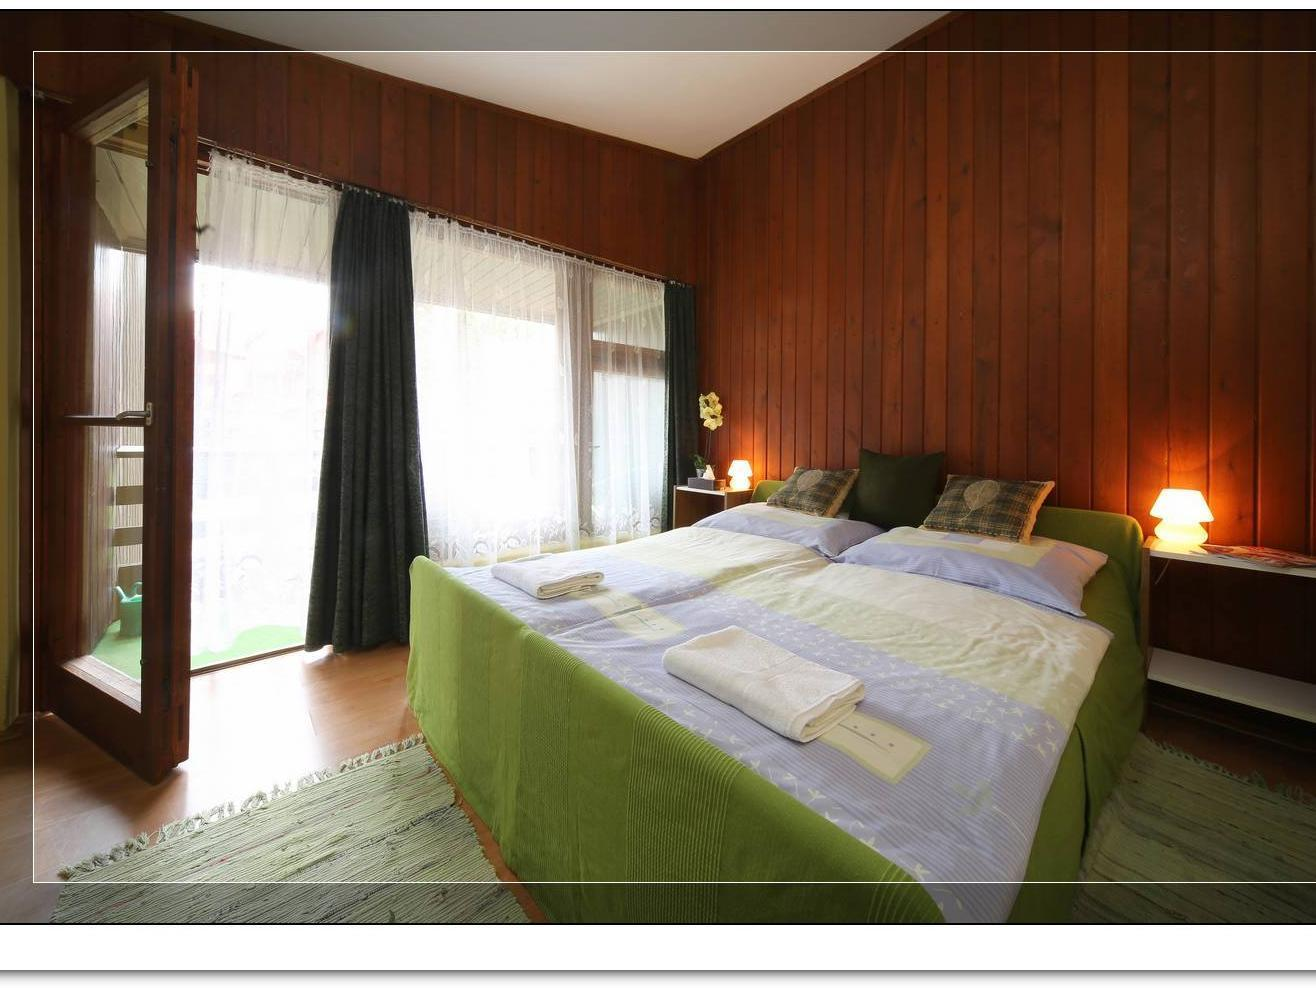 Mediterran Haus Hotel Melis In Balatonlelle Room Deals Photos Reviews